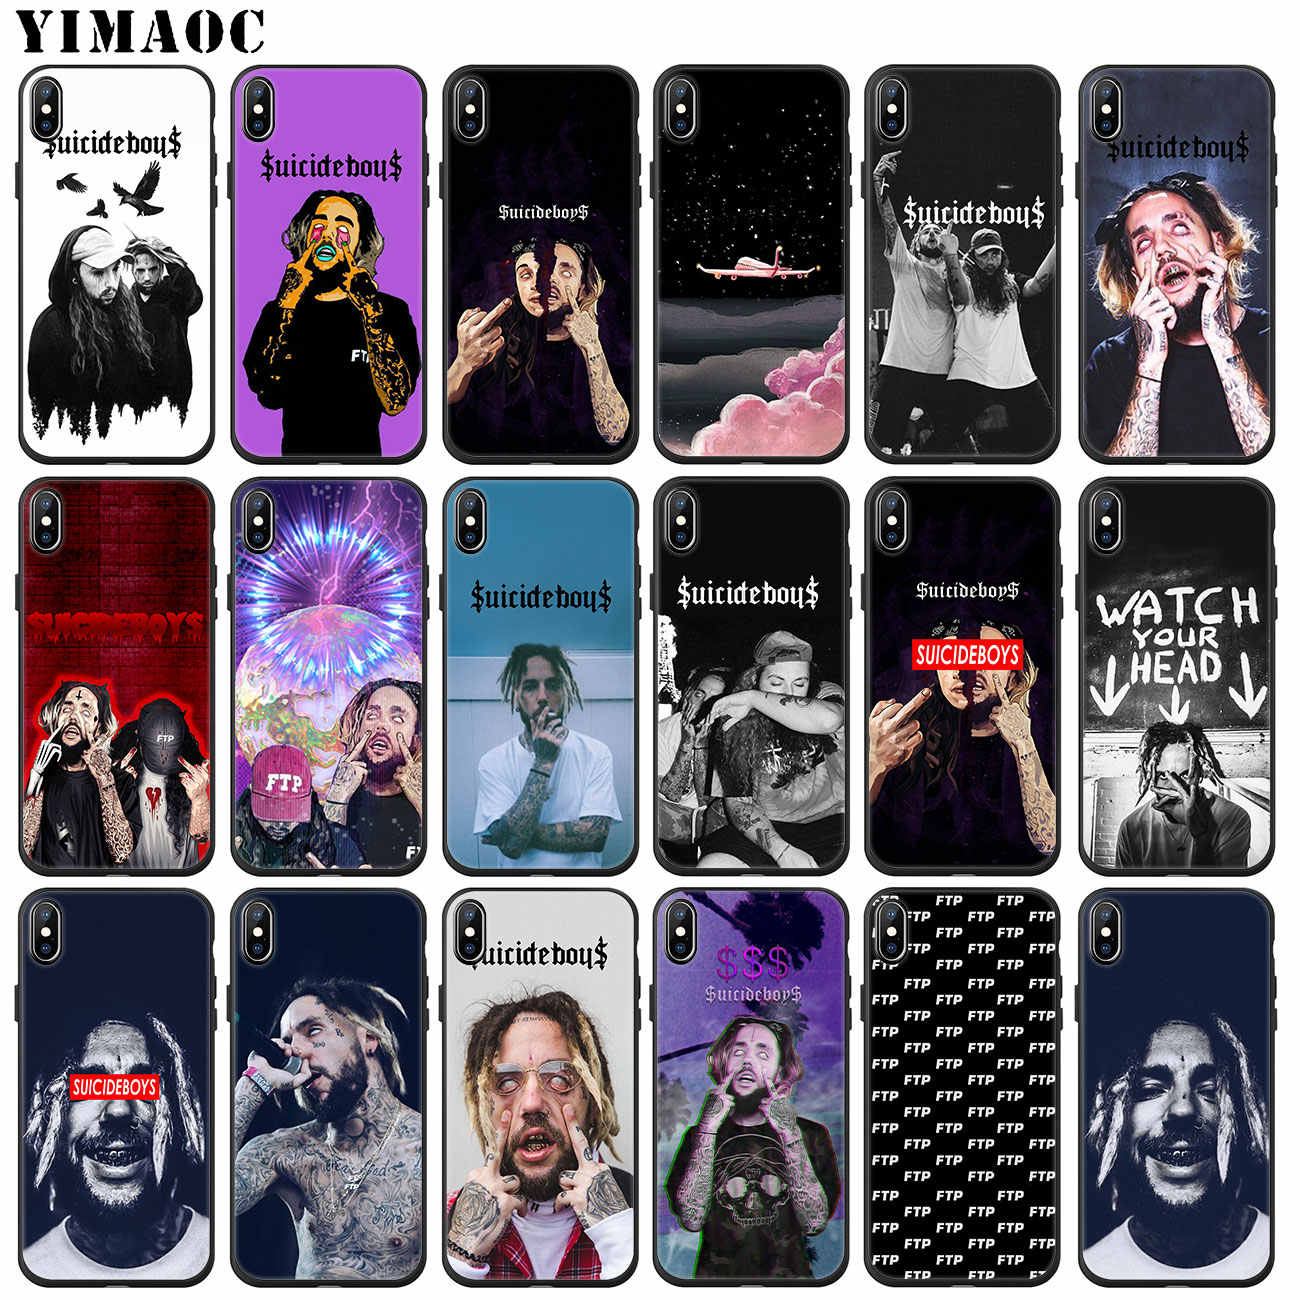 حافظة هاتف من السيليكون الناعم من YIMAOC FTP $ uicideboy $ uicideboy Suicideboys لهاتف iPhone 11 Pro XS Max XR X 6 6S 7 8 Plus 5 5s SE 10